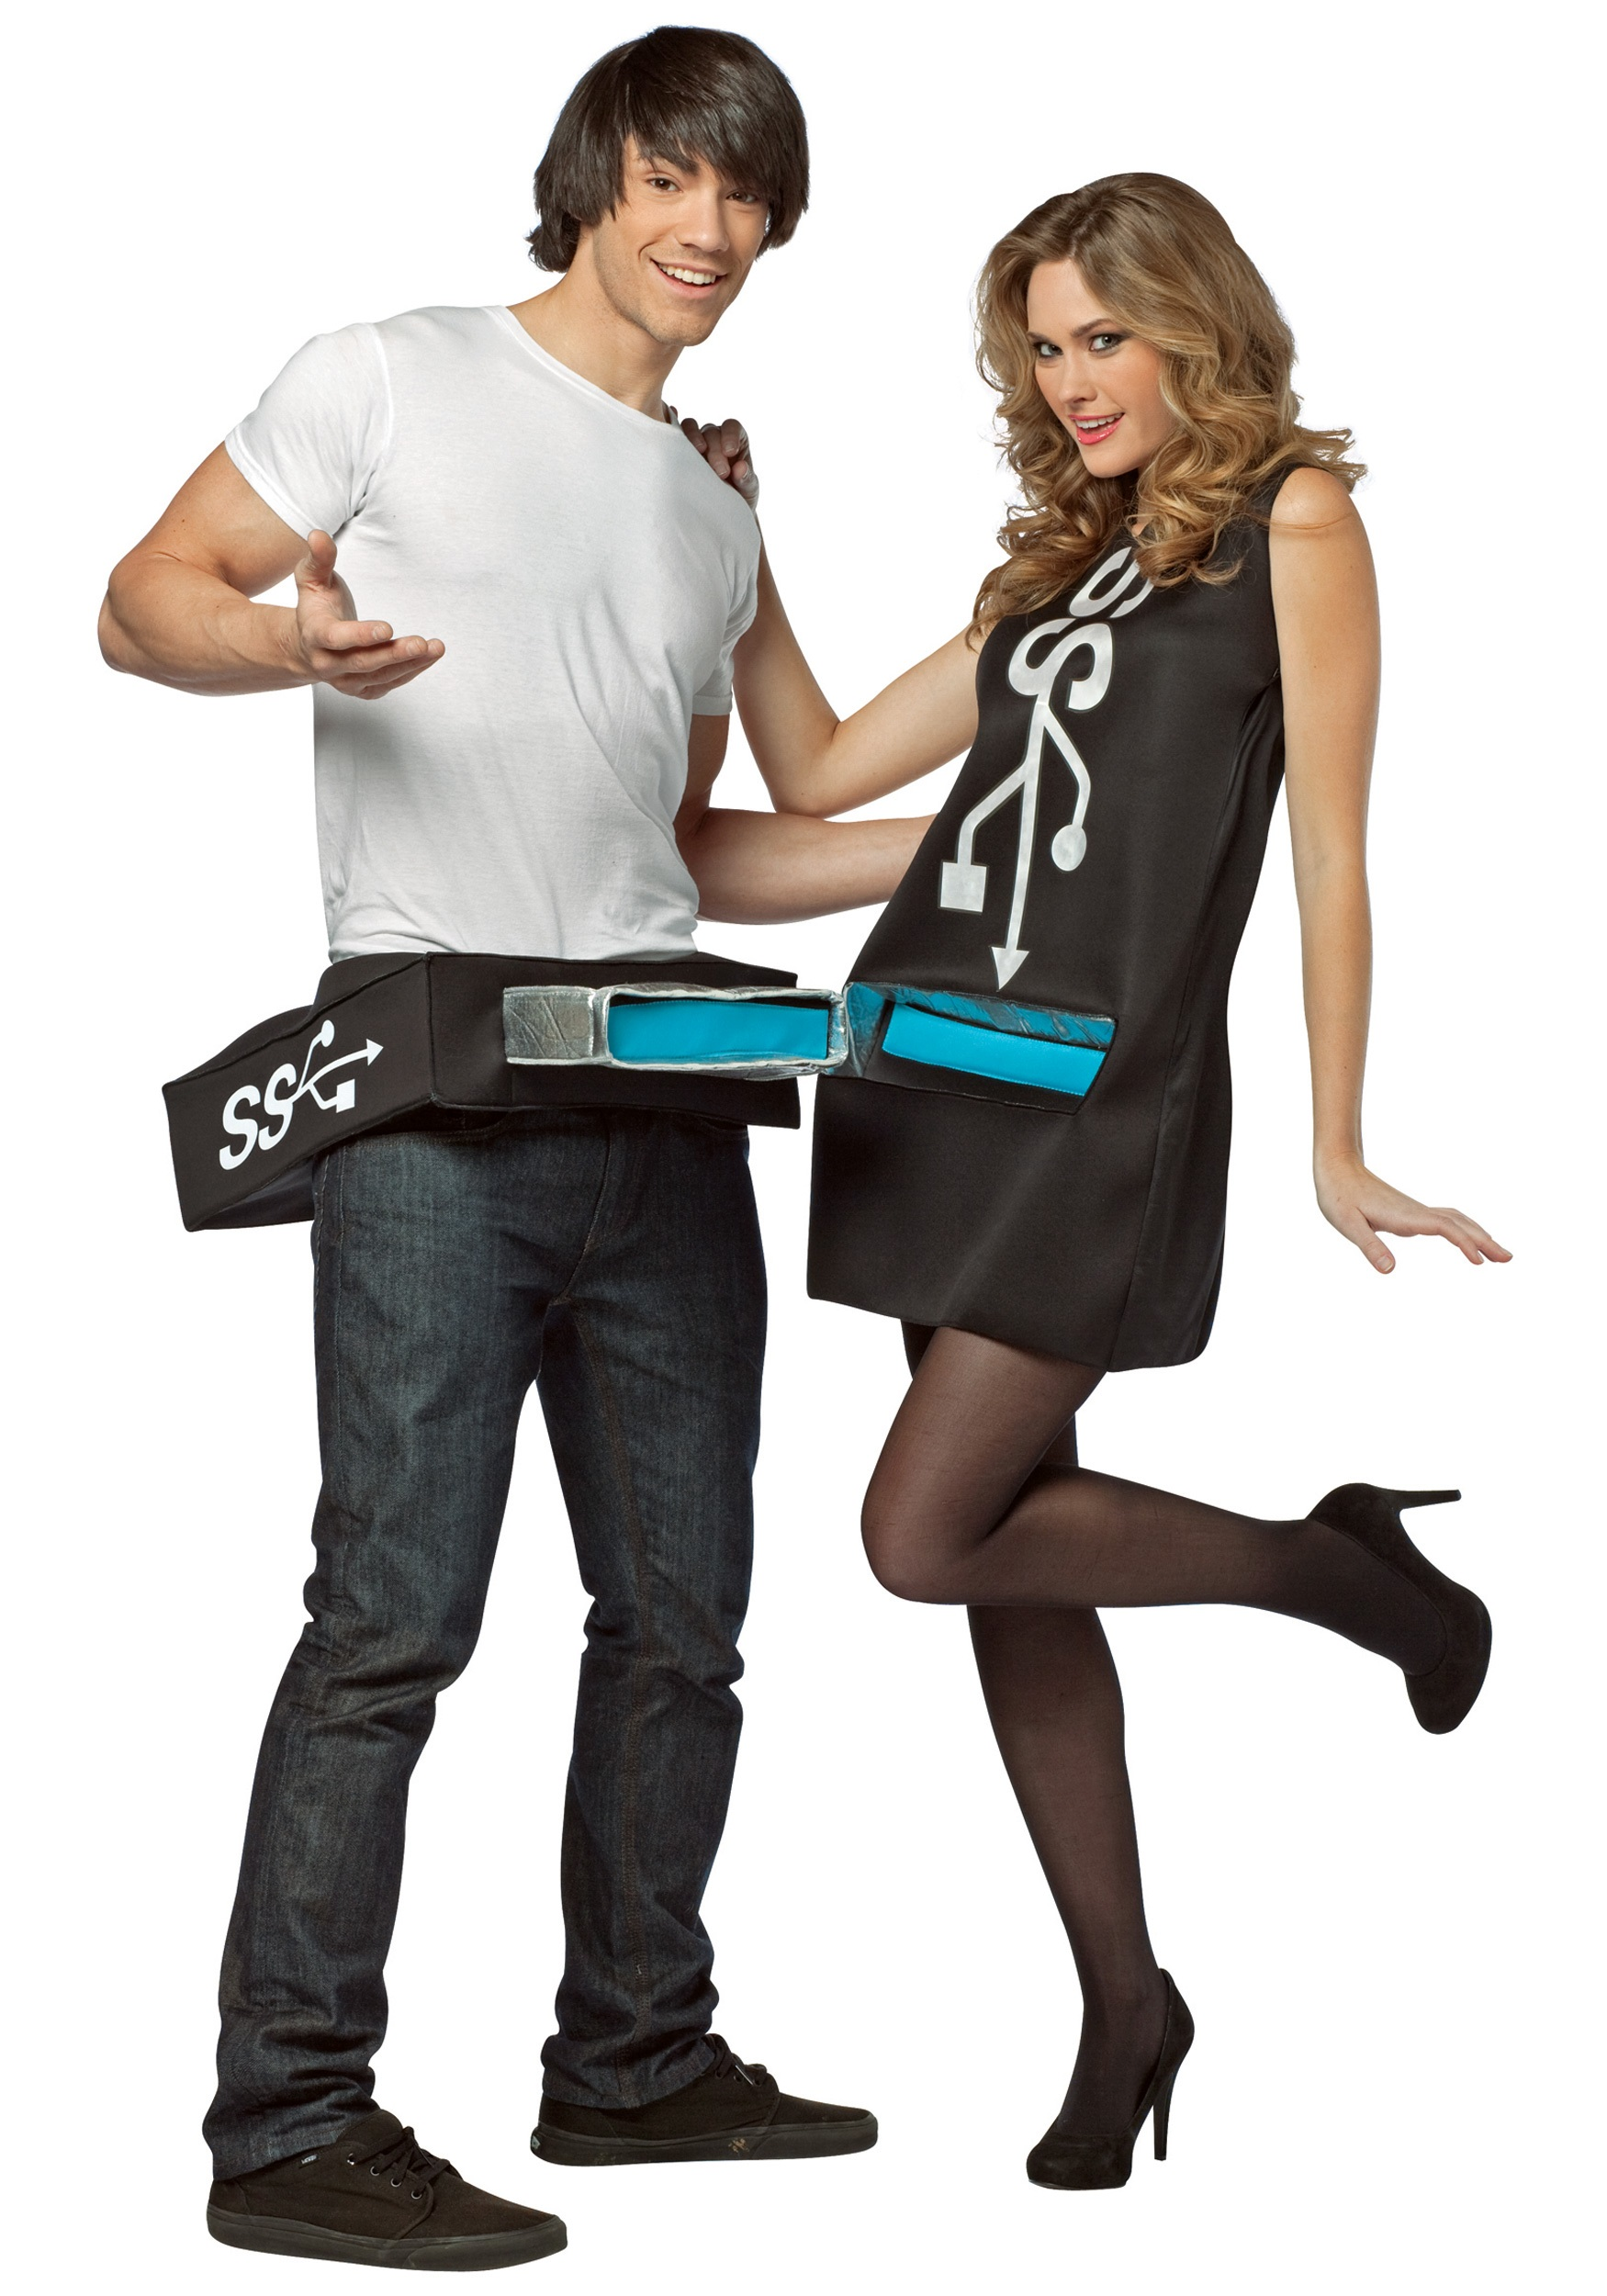 USB Port & Drive Costume